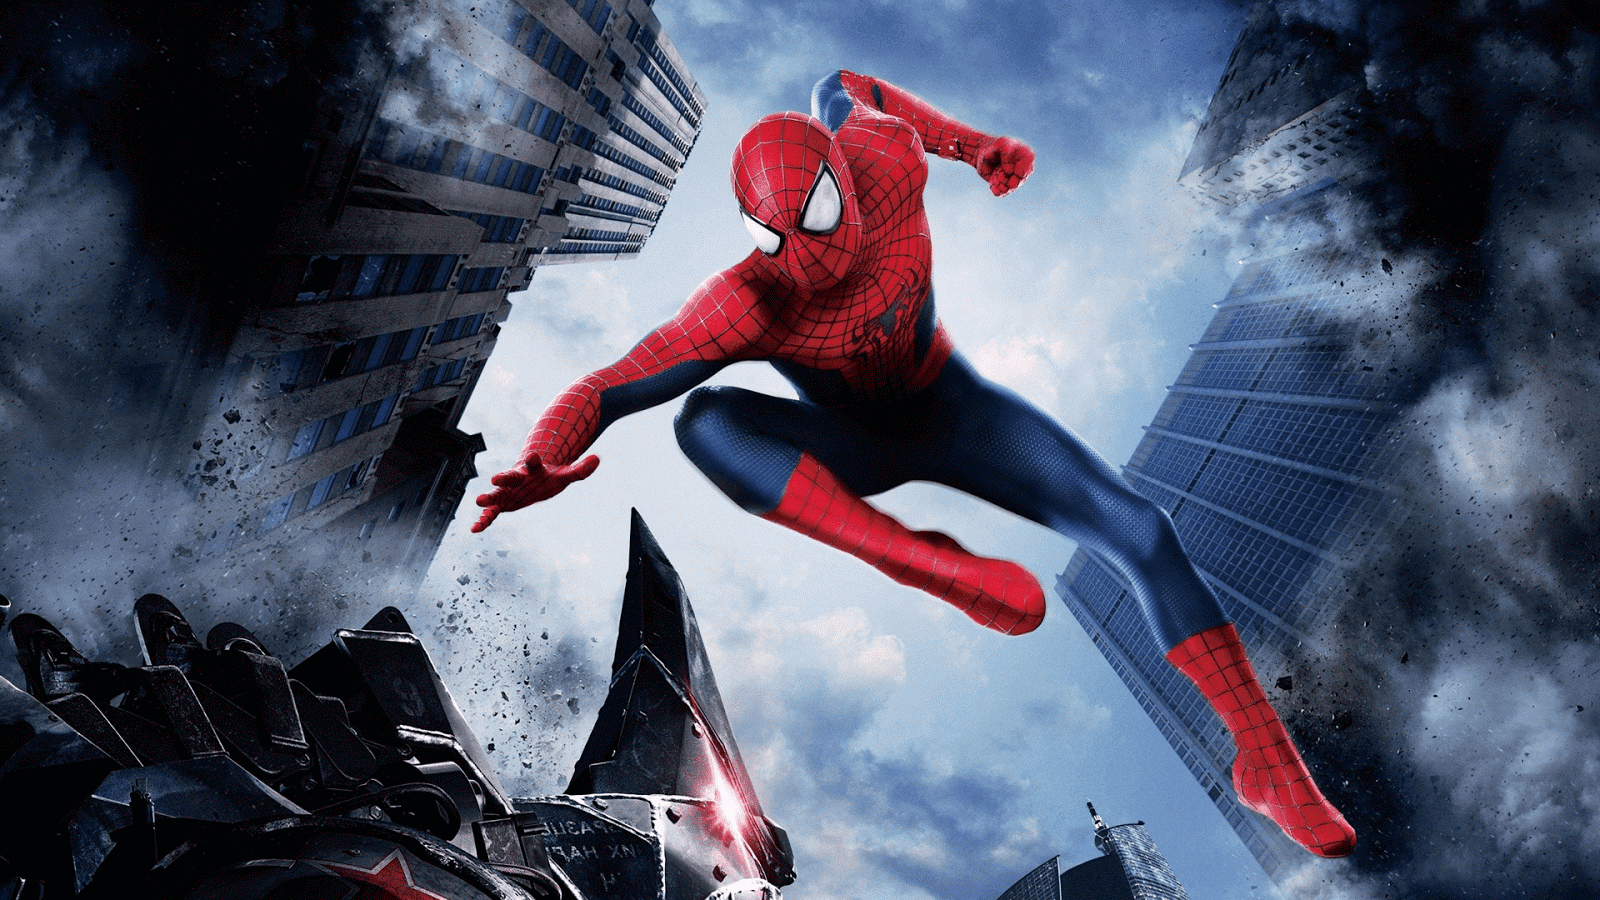 amazing spider man wallpaper hd image collections